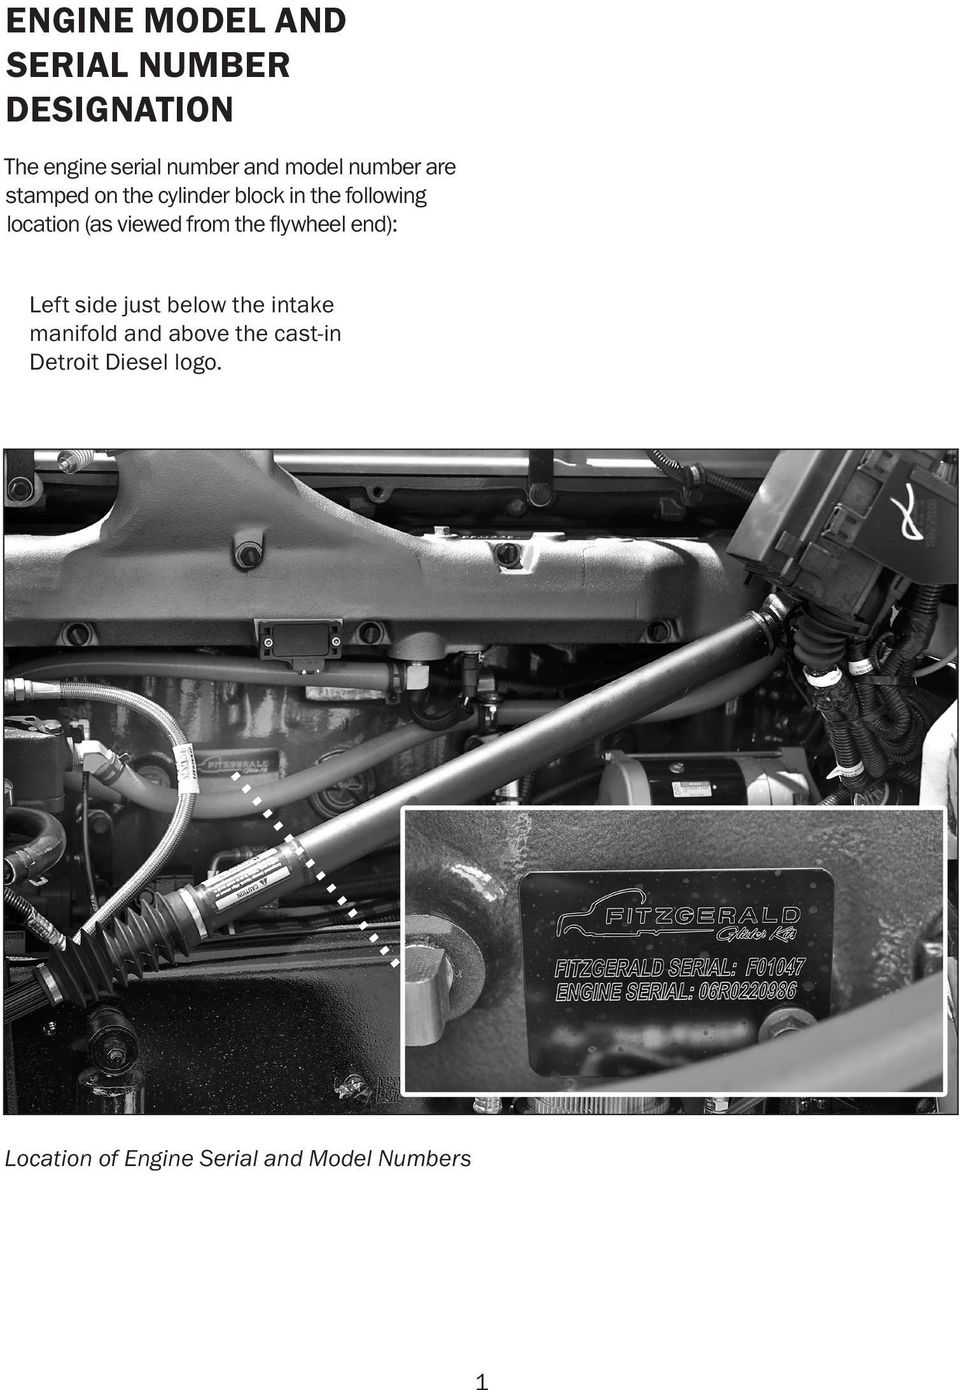 DETROIT DIESEL SERIES 60 ENGINE - PDF